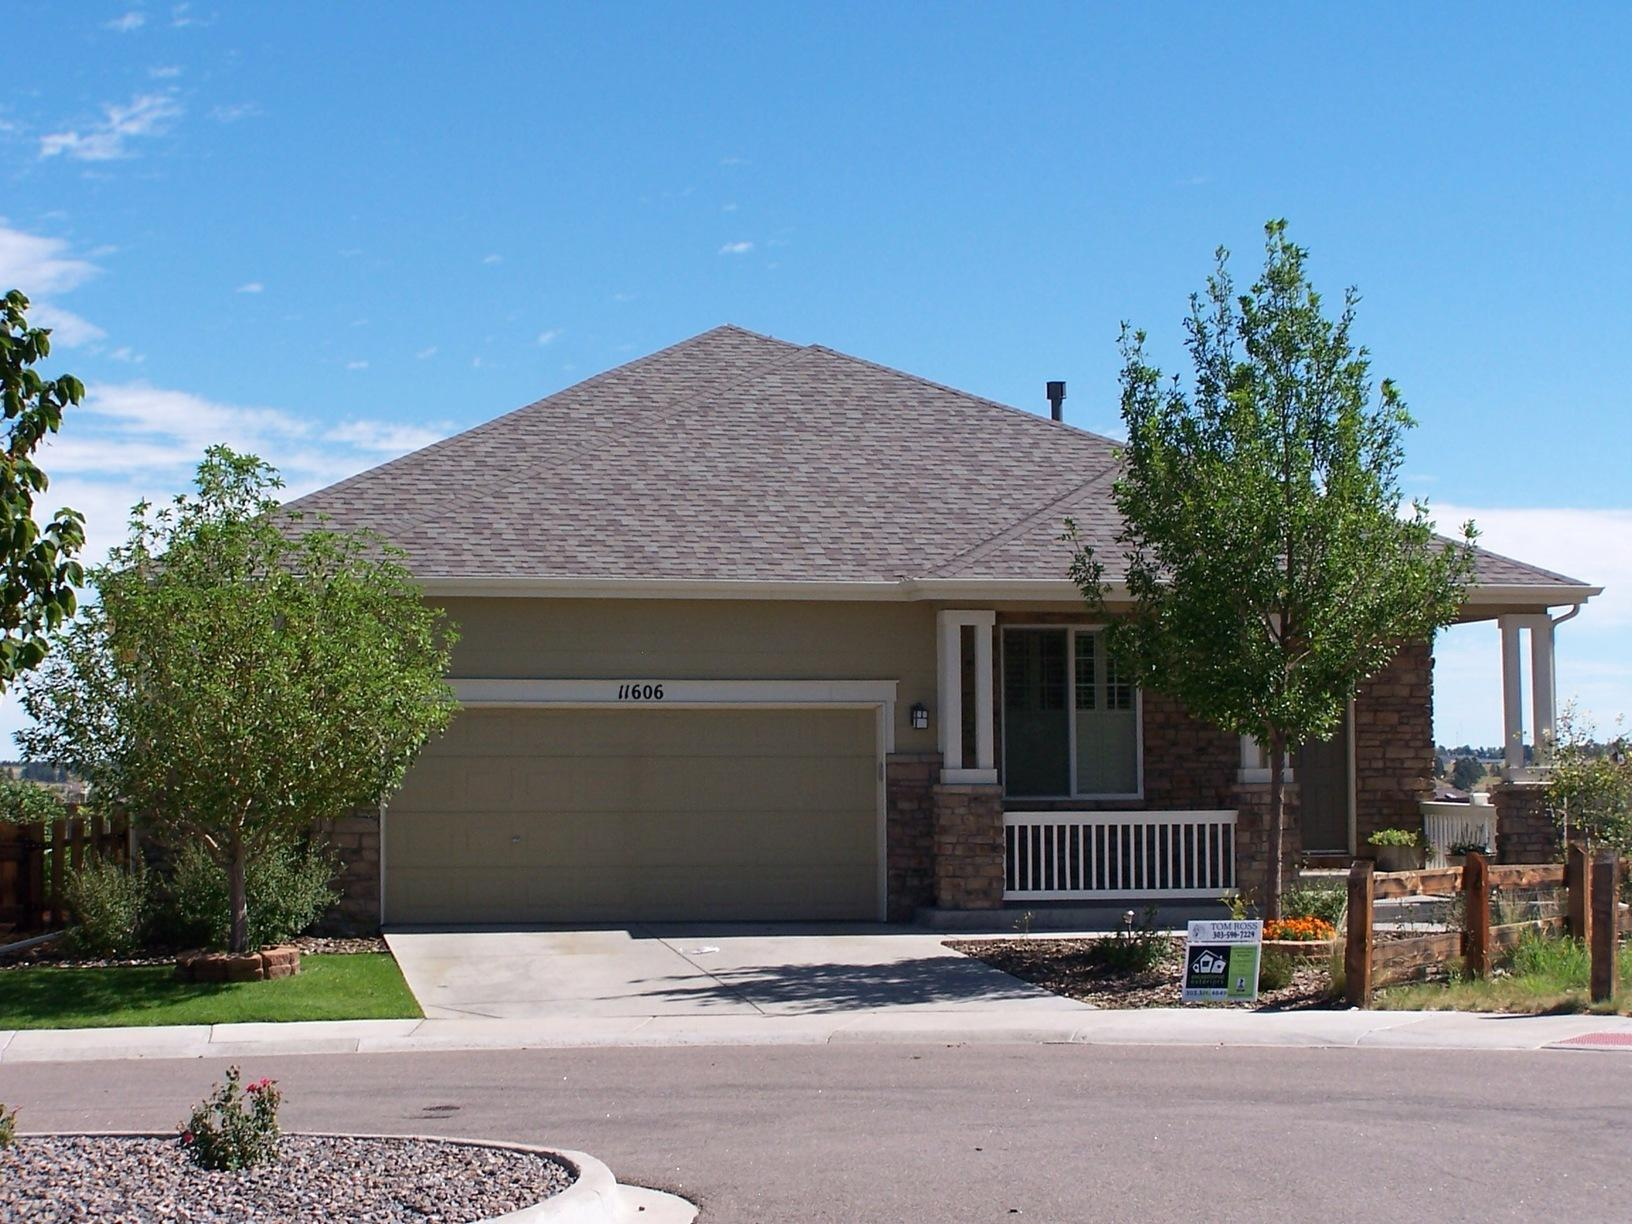 Installing a New Roof on a Parker, CO Home